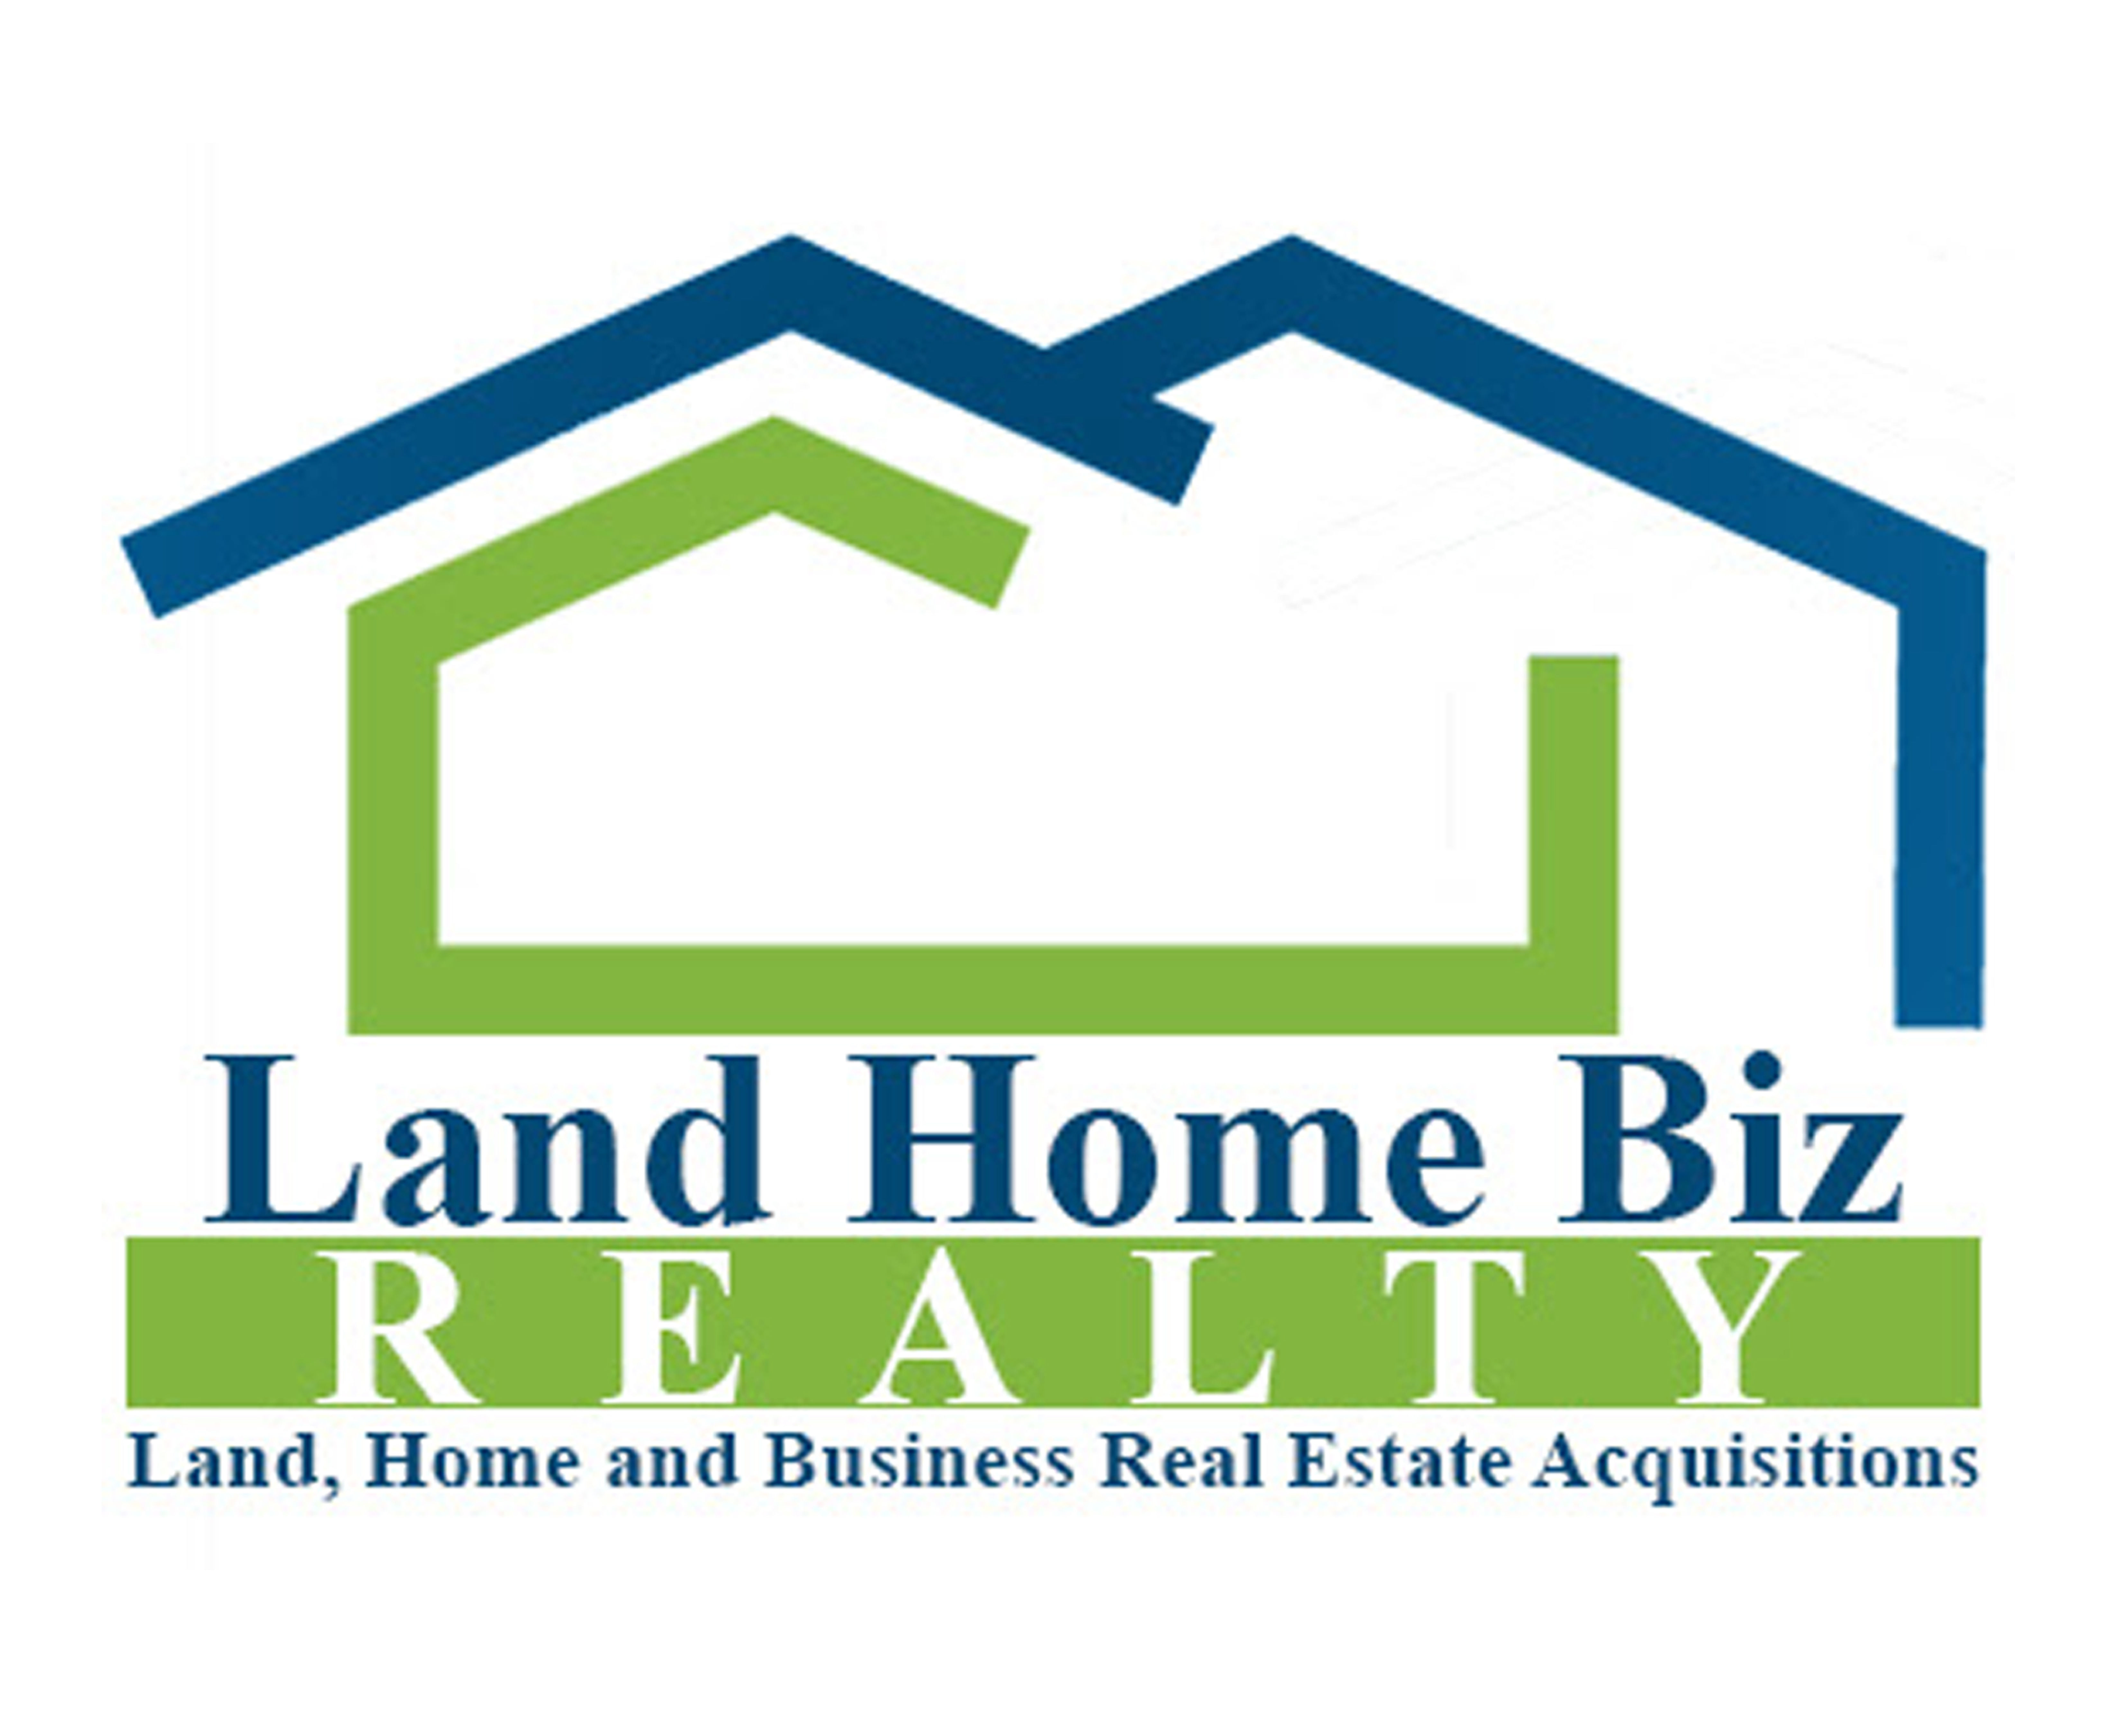 Land Home Biz Realty